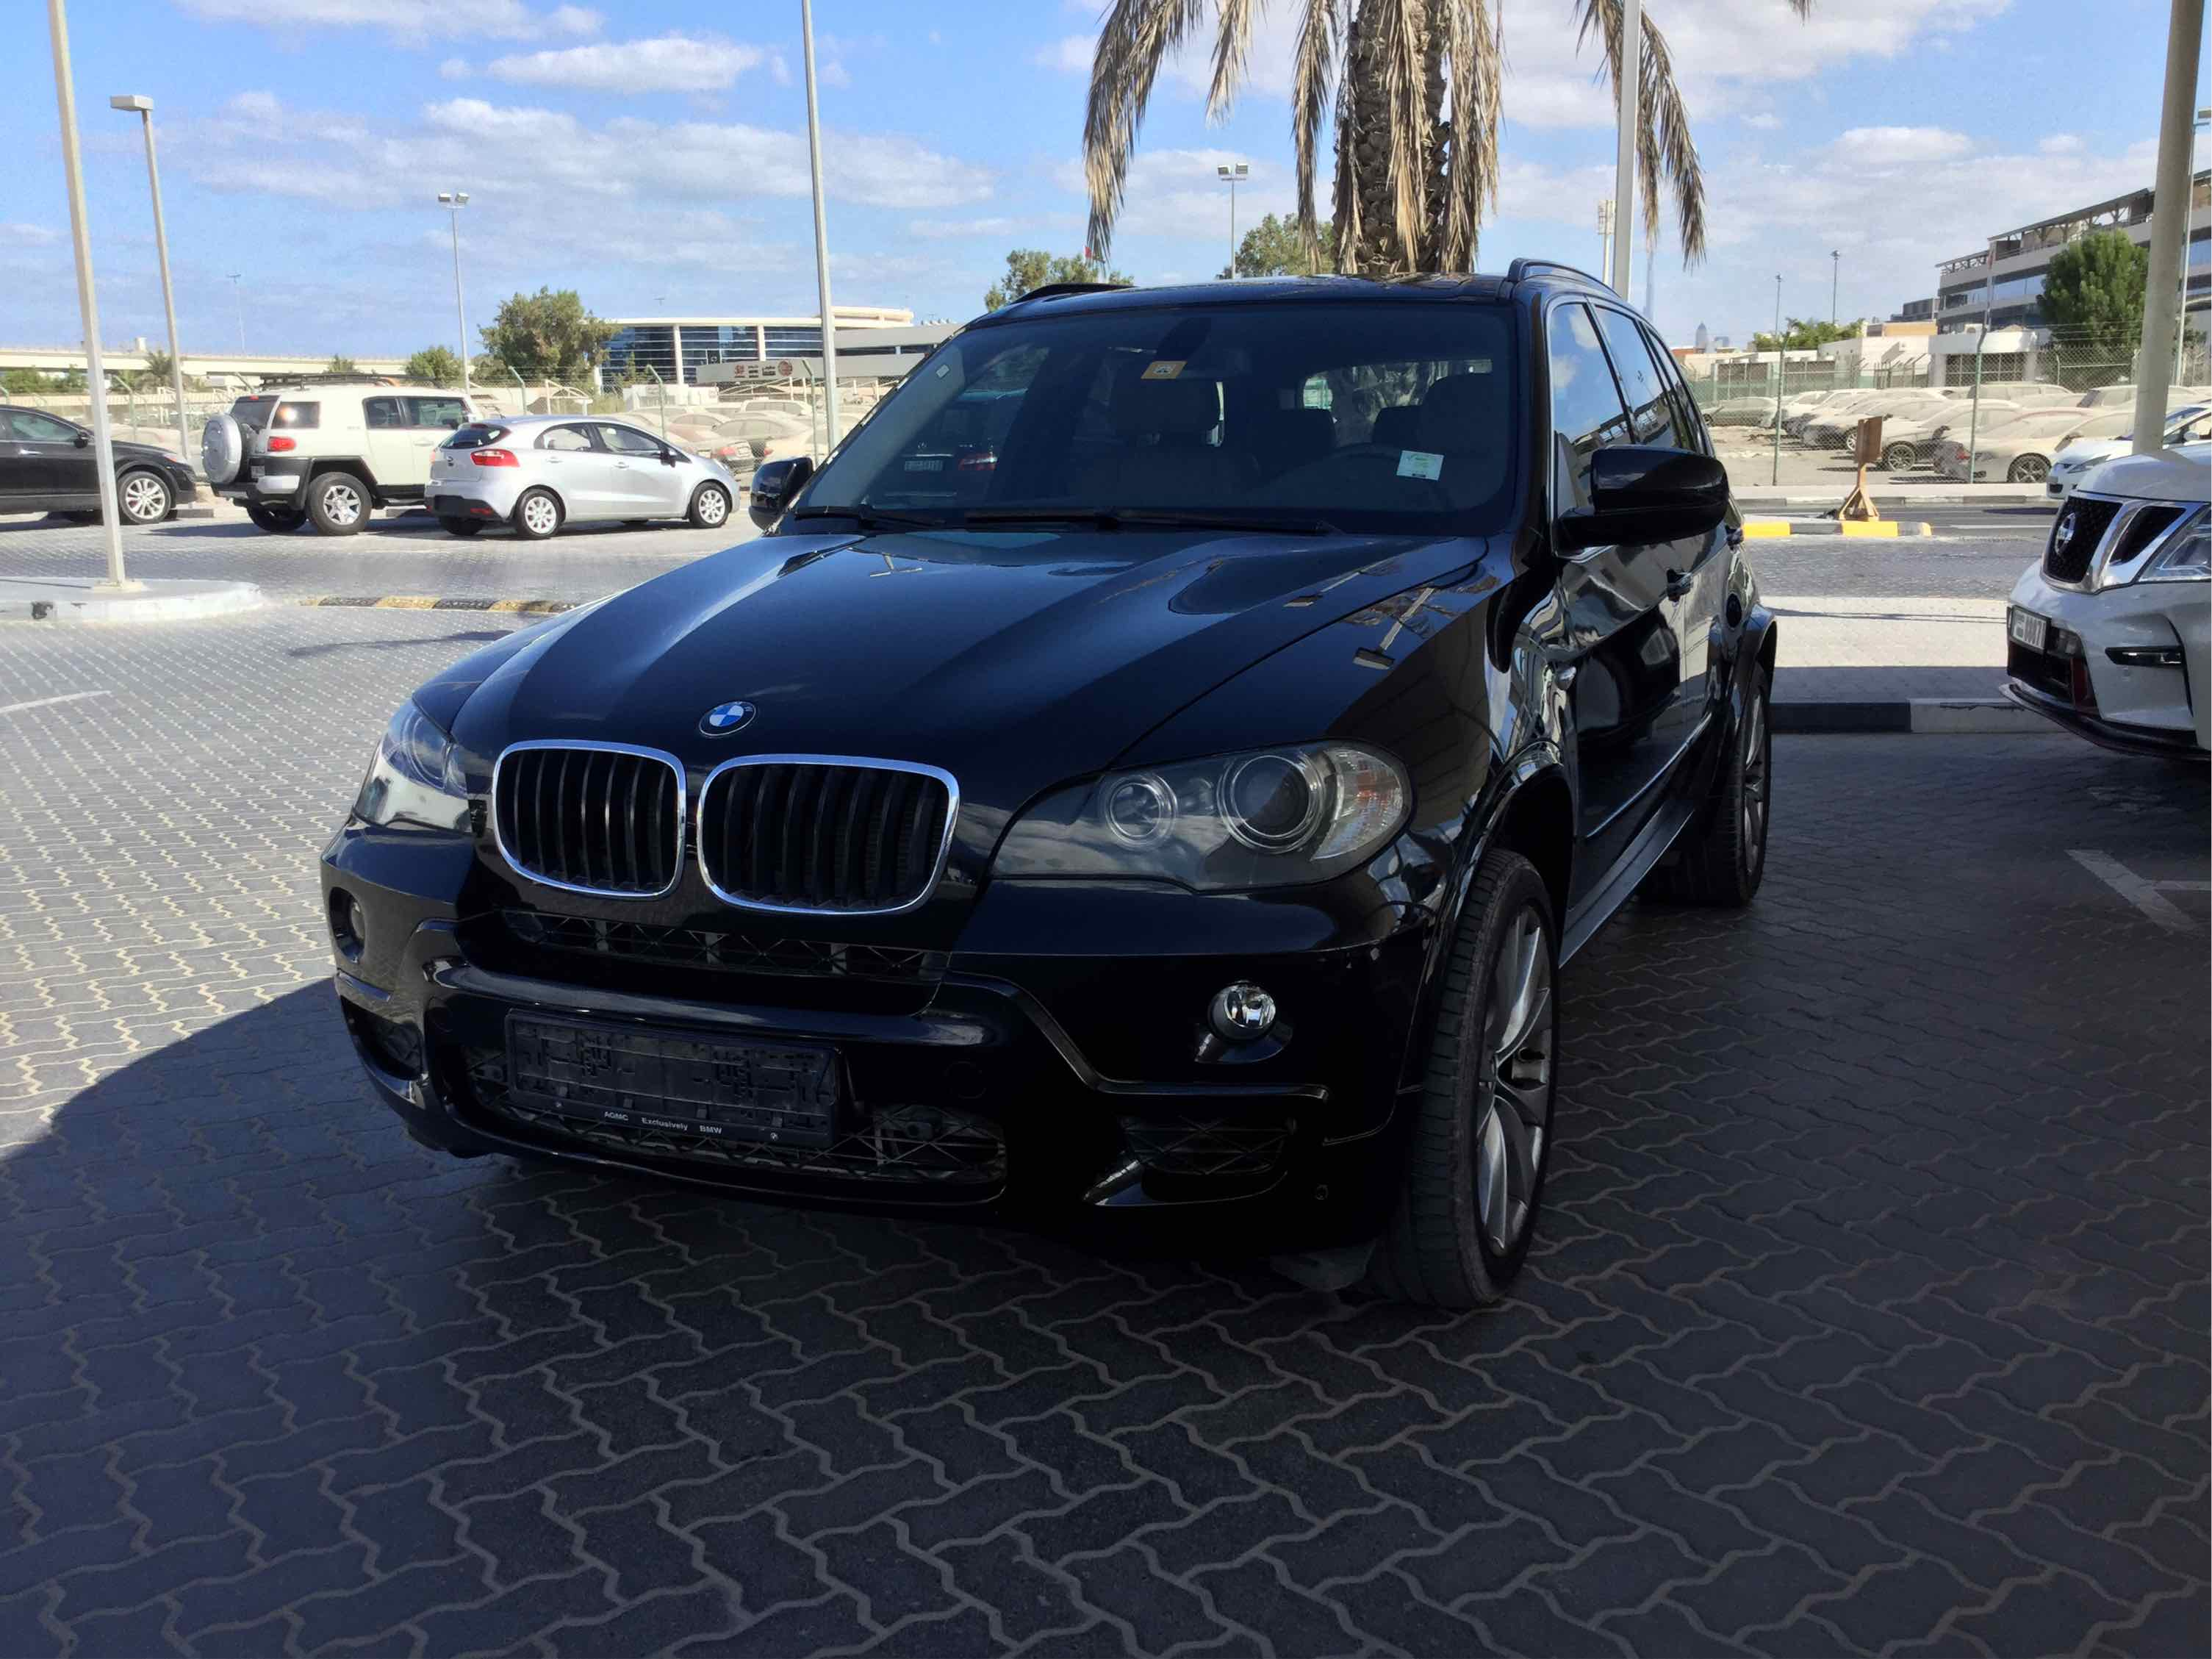 xdrive cars in auto sale bmw classifieds for peterborough used